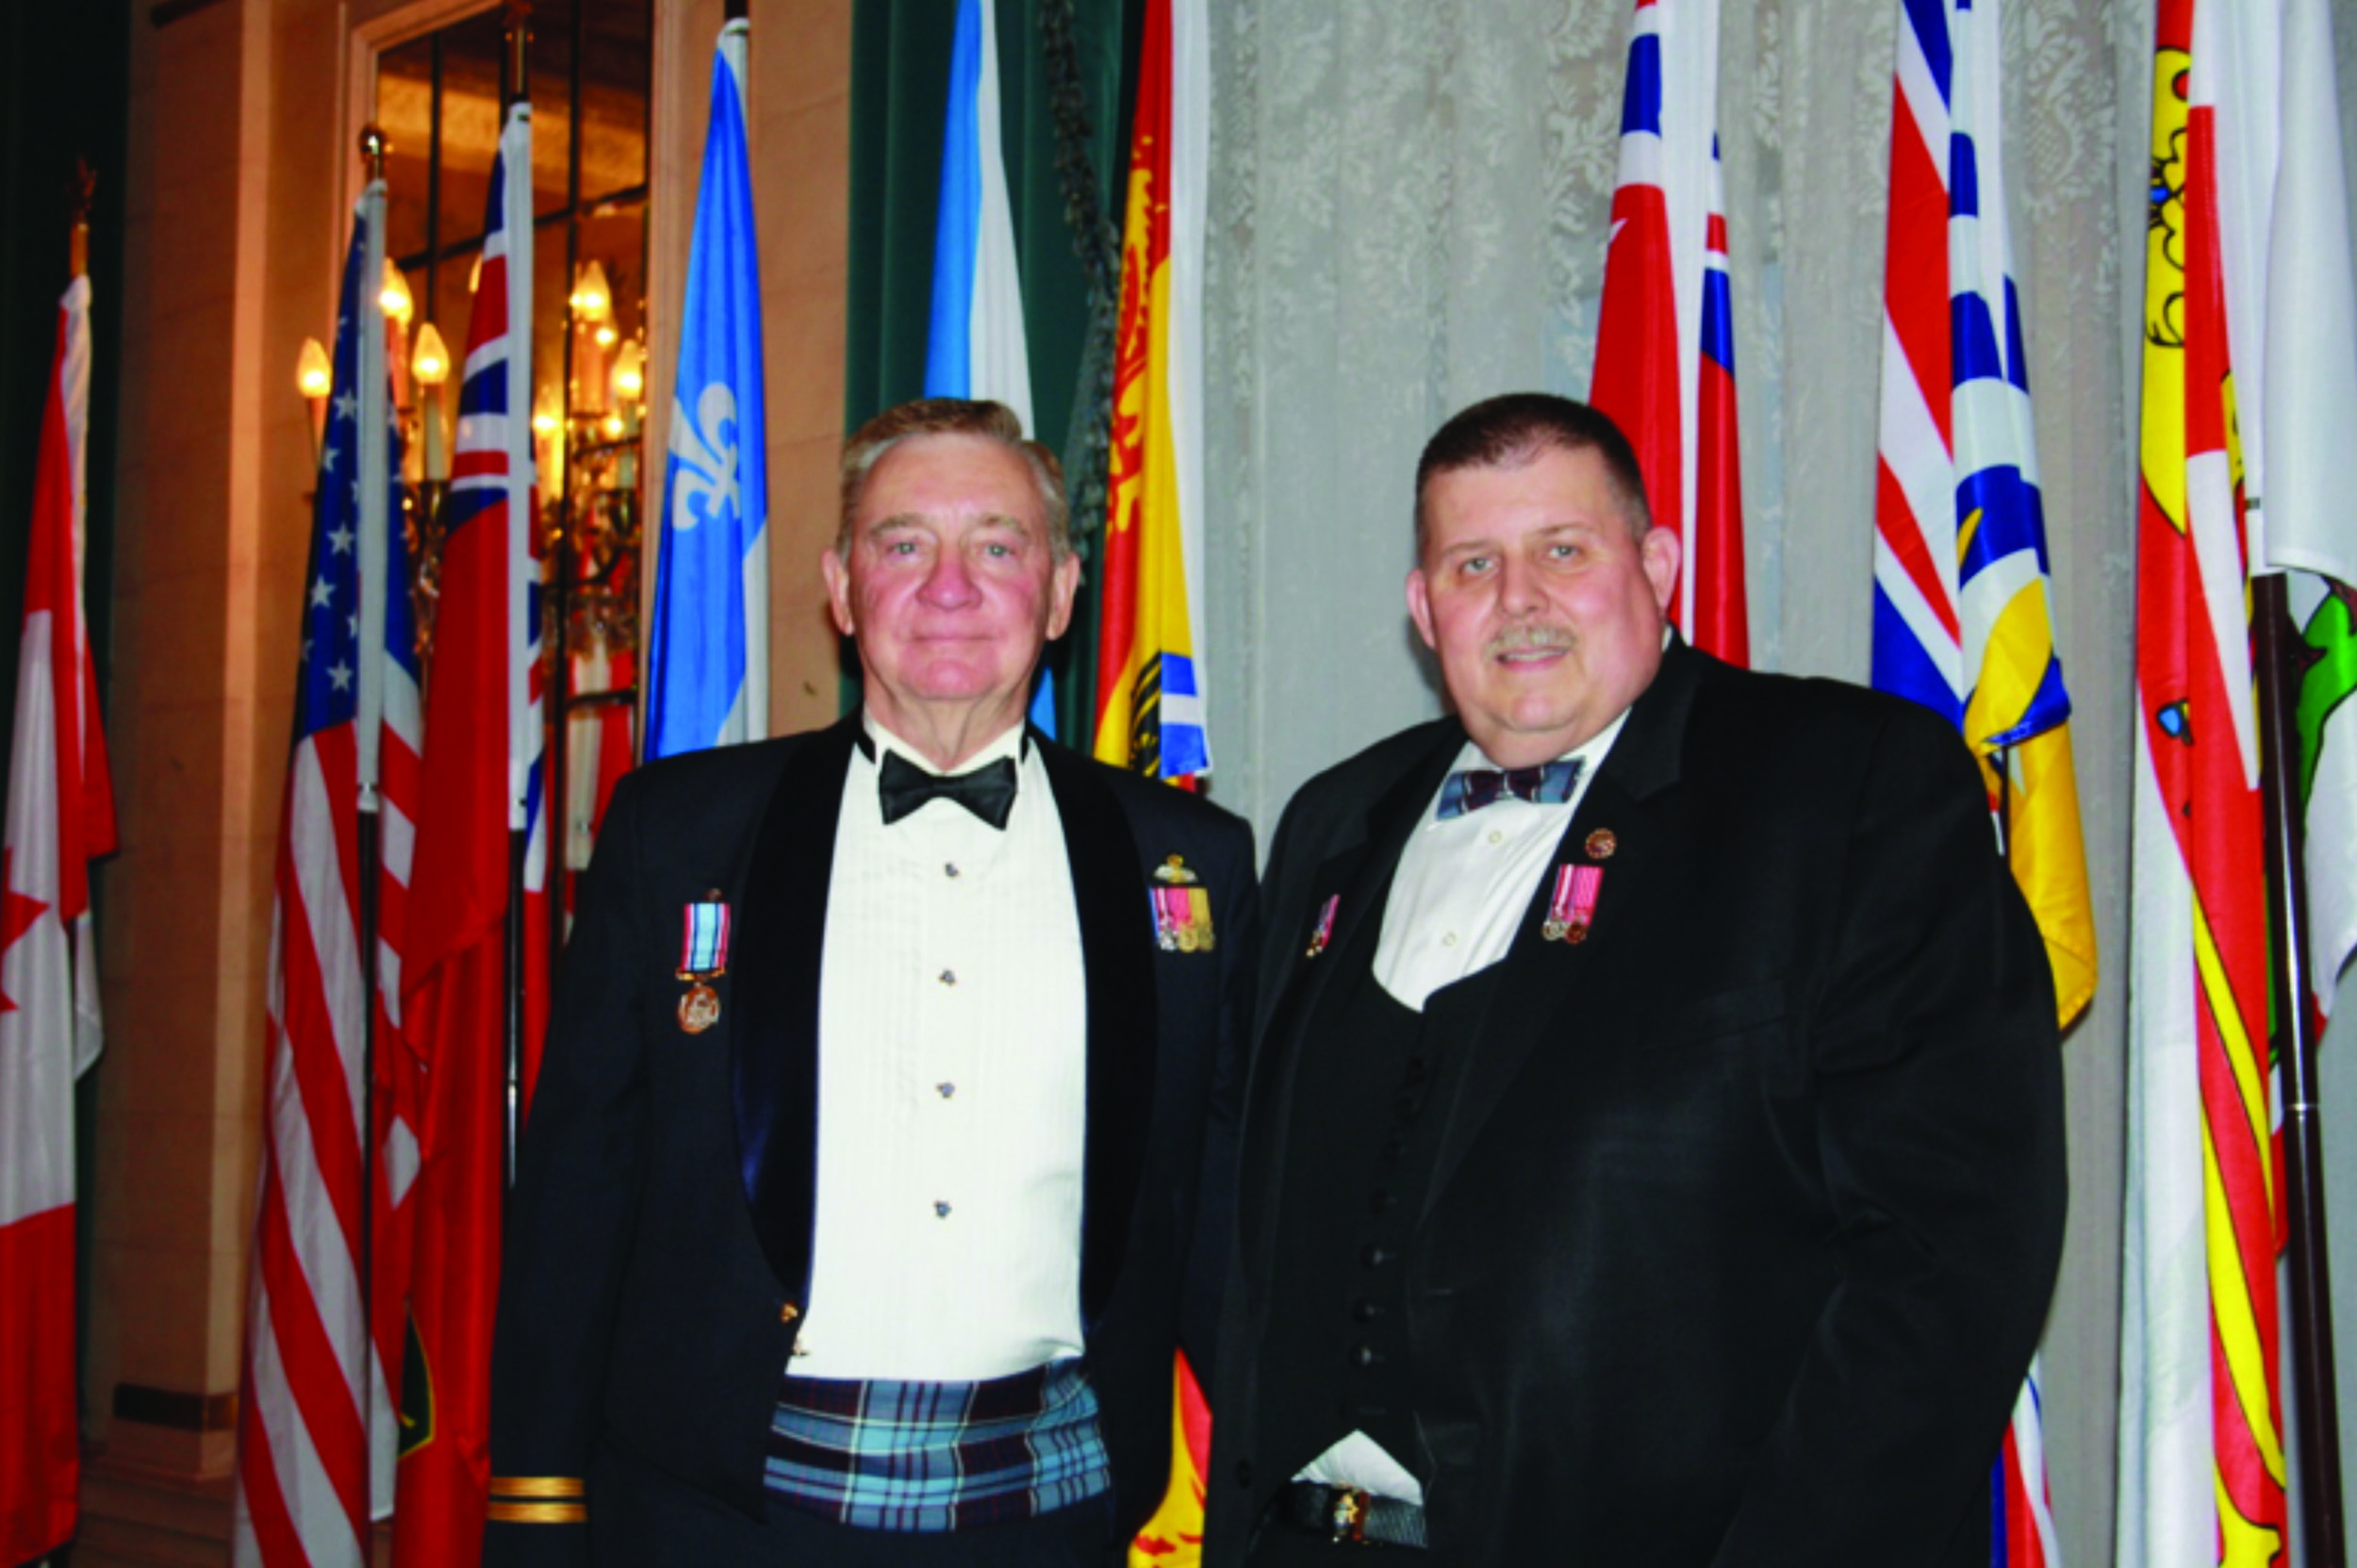 From left to right: Merv Ozirny, National First Vice-President, and Donald Berrill, National President of the Air Cadet League of Canada.